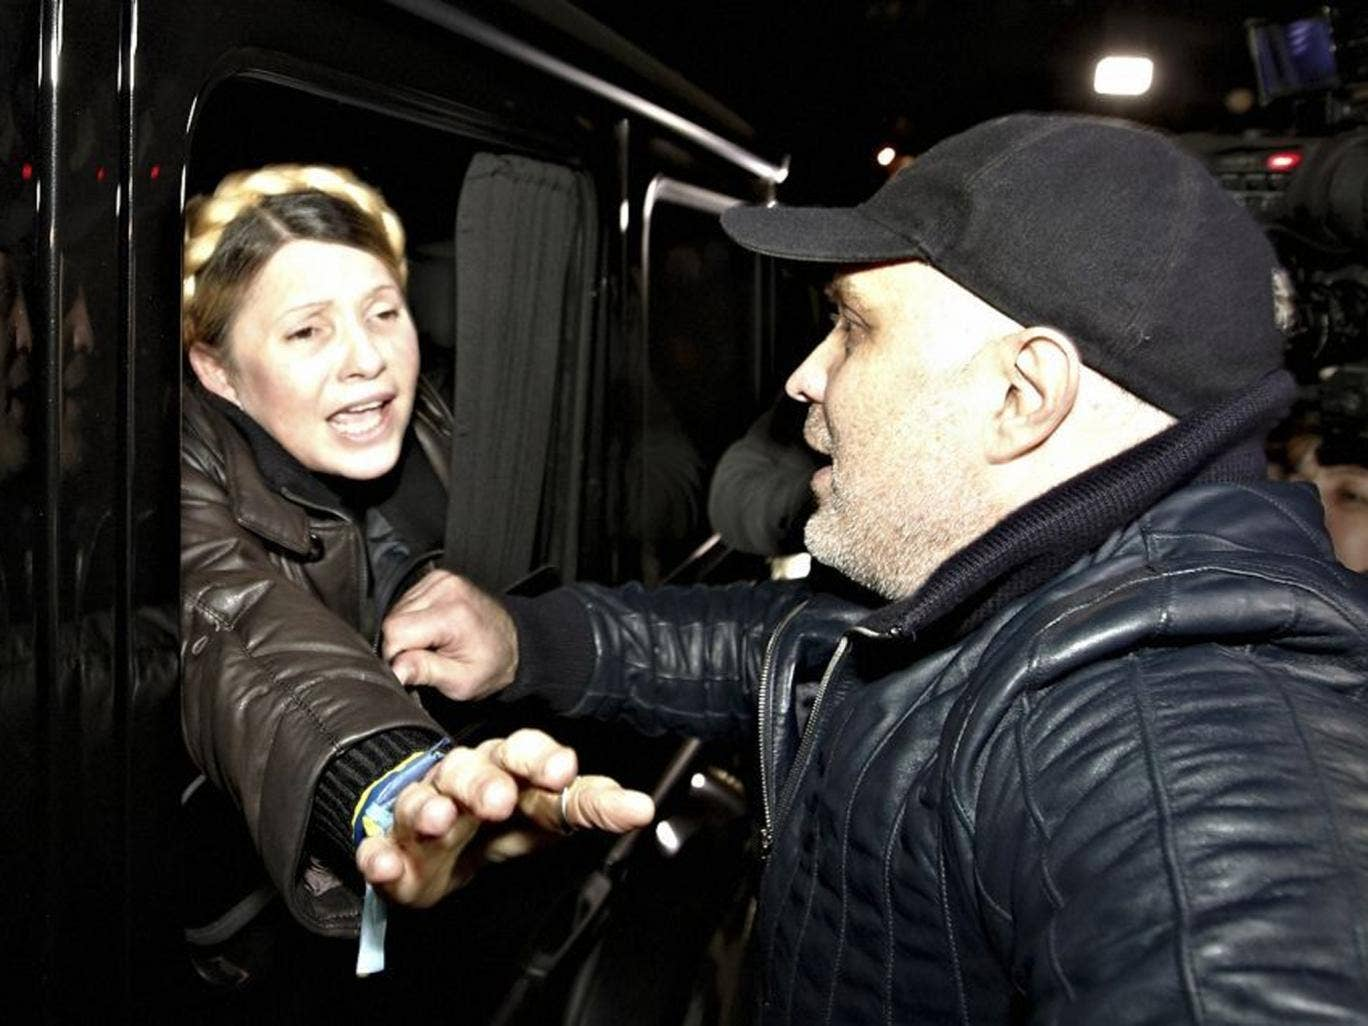 Yulia Tymoshenko is greeted by supporters shortly after being freed from prison in Kharkiv, Ukraine